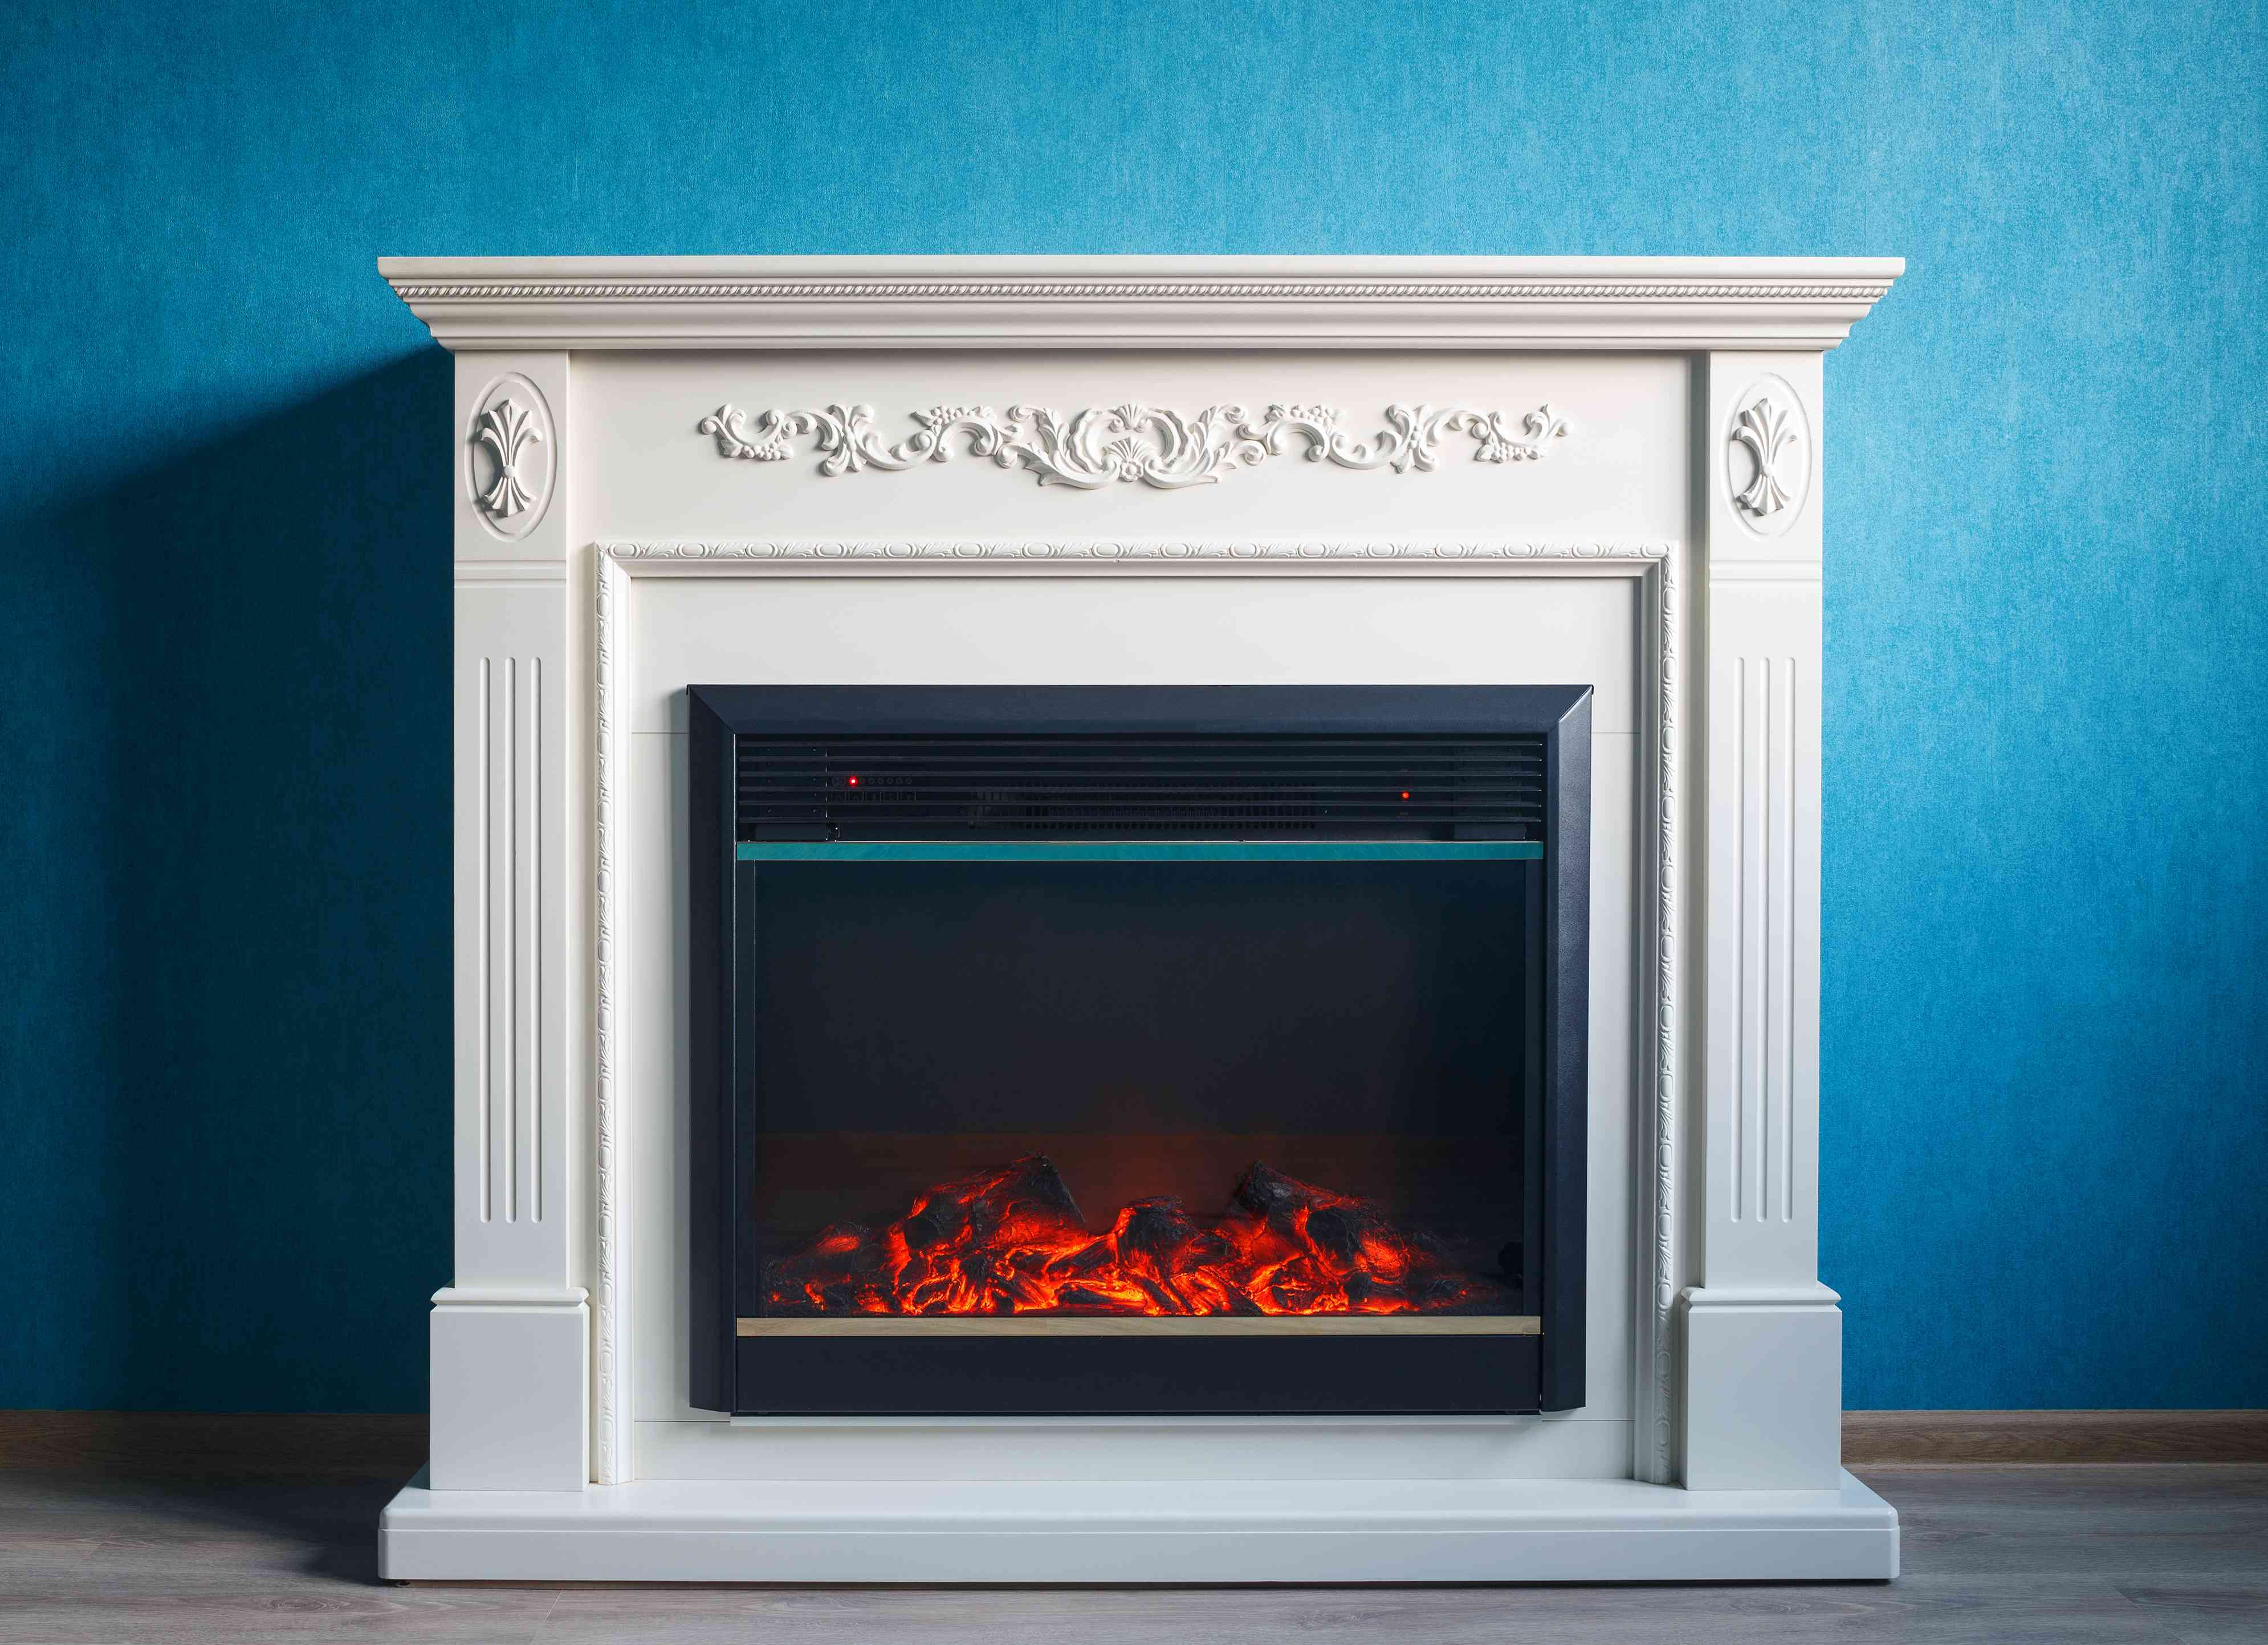 Electric fireplace with white exterior detailing against a blue wall